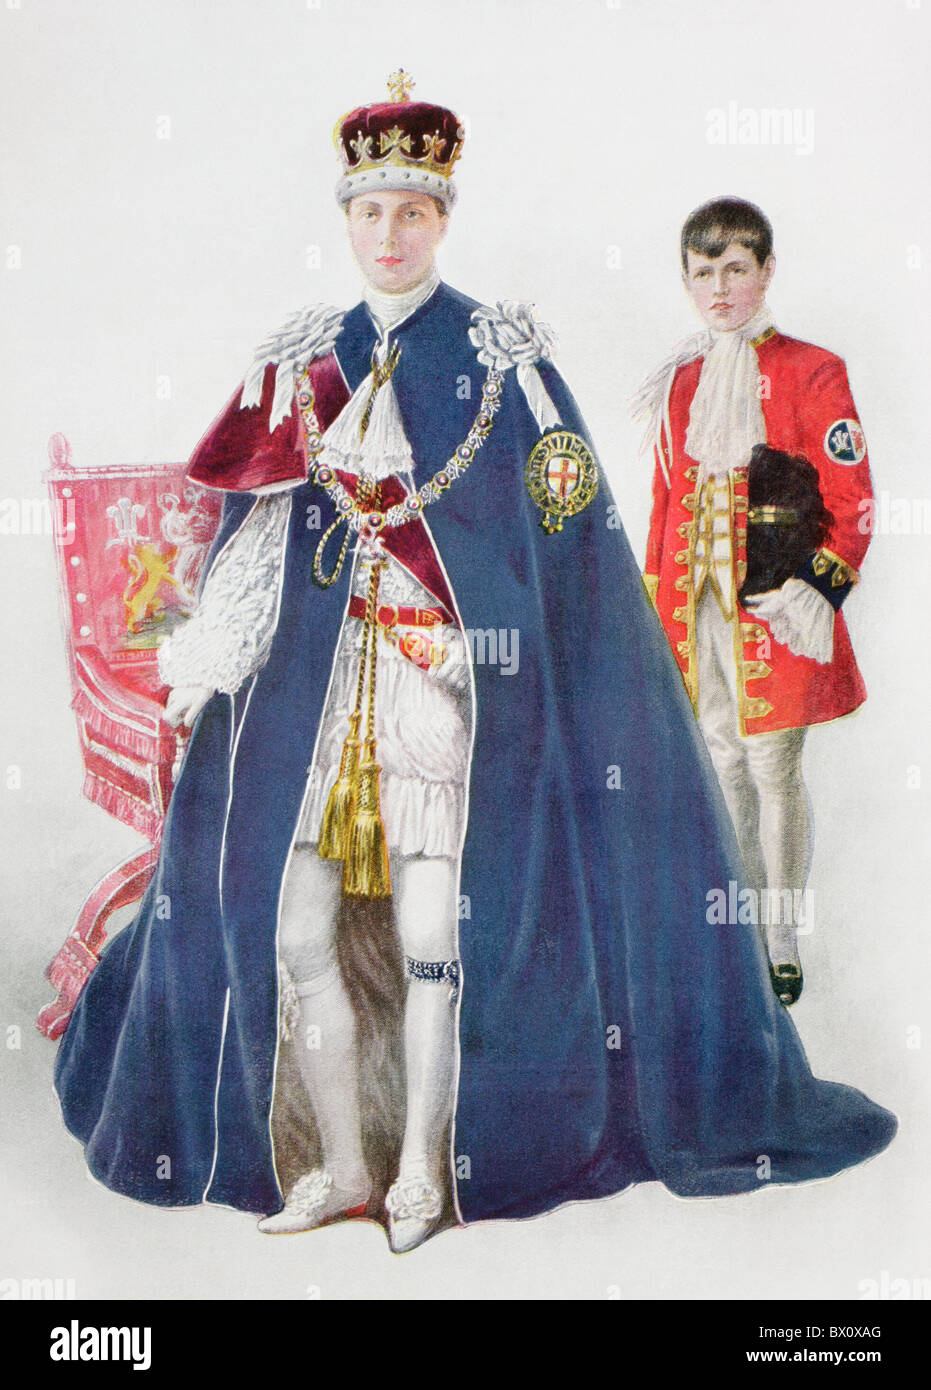 Edward VIII, as Prince of Wales attended by his page. - Stock Image